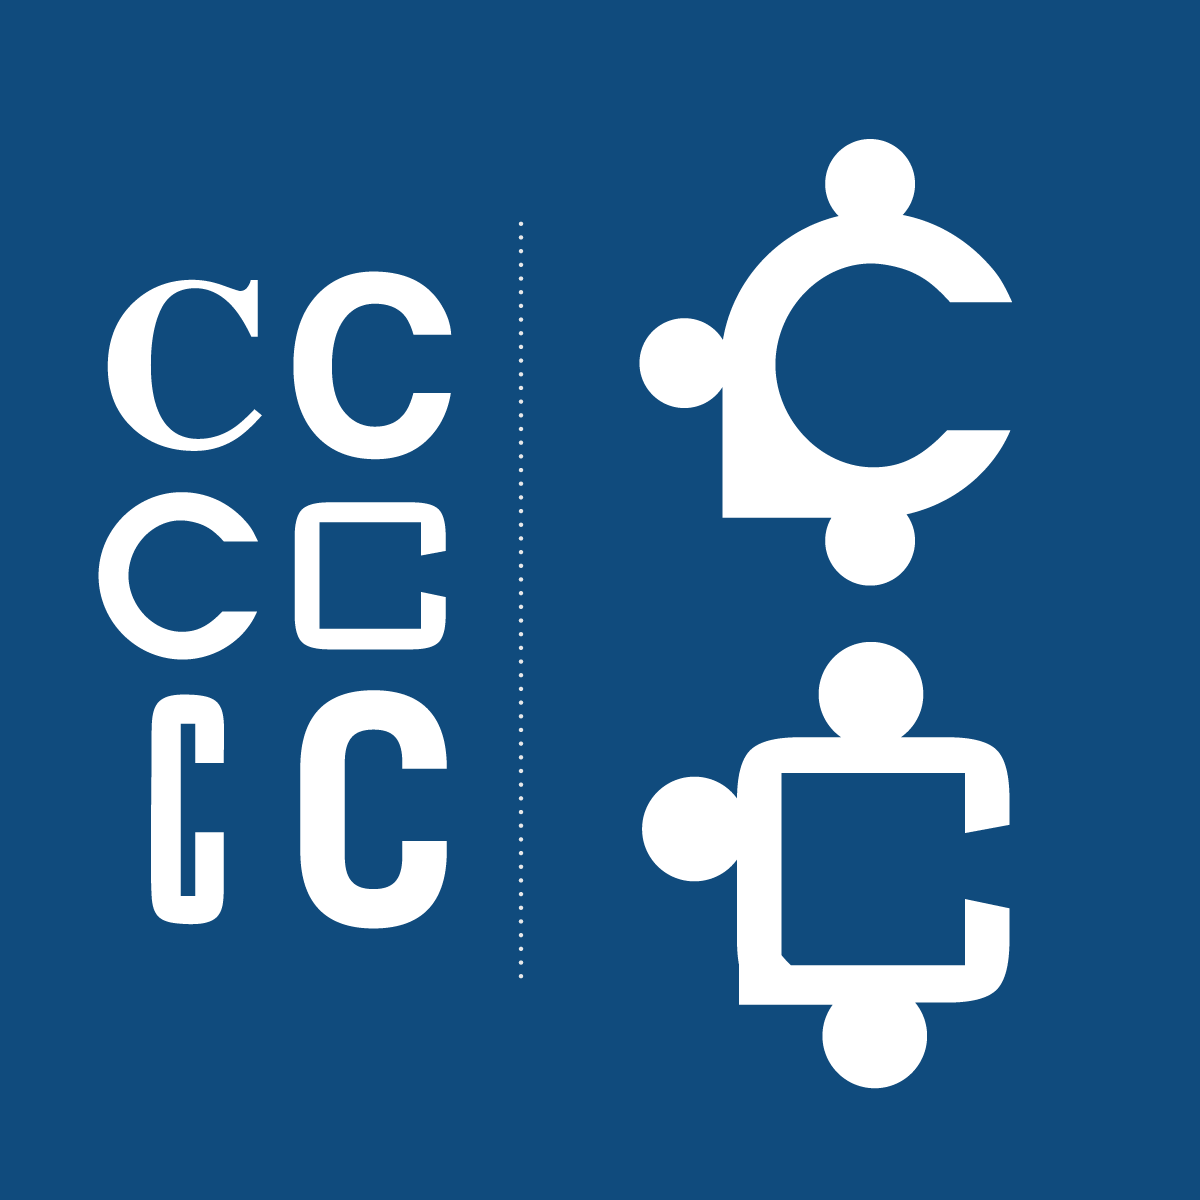 puzzle and letter C graphic development